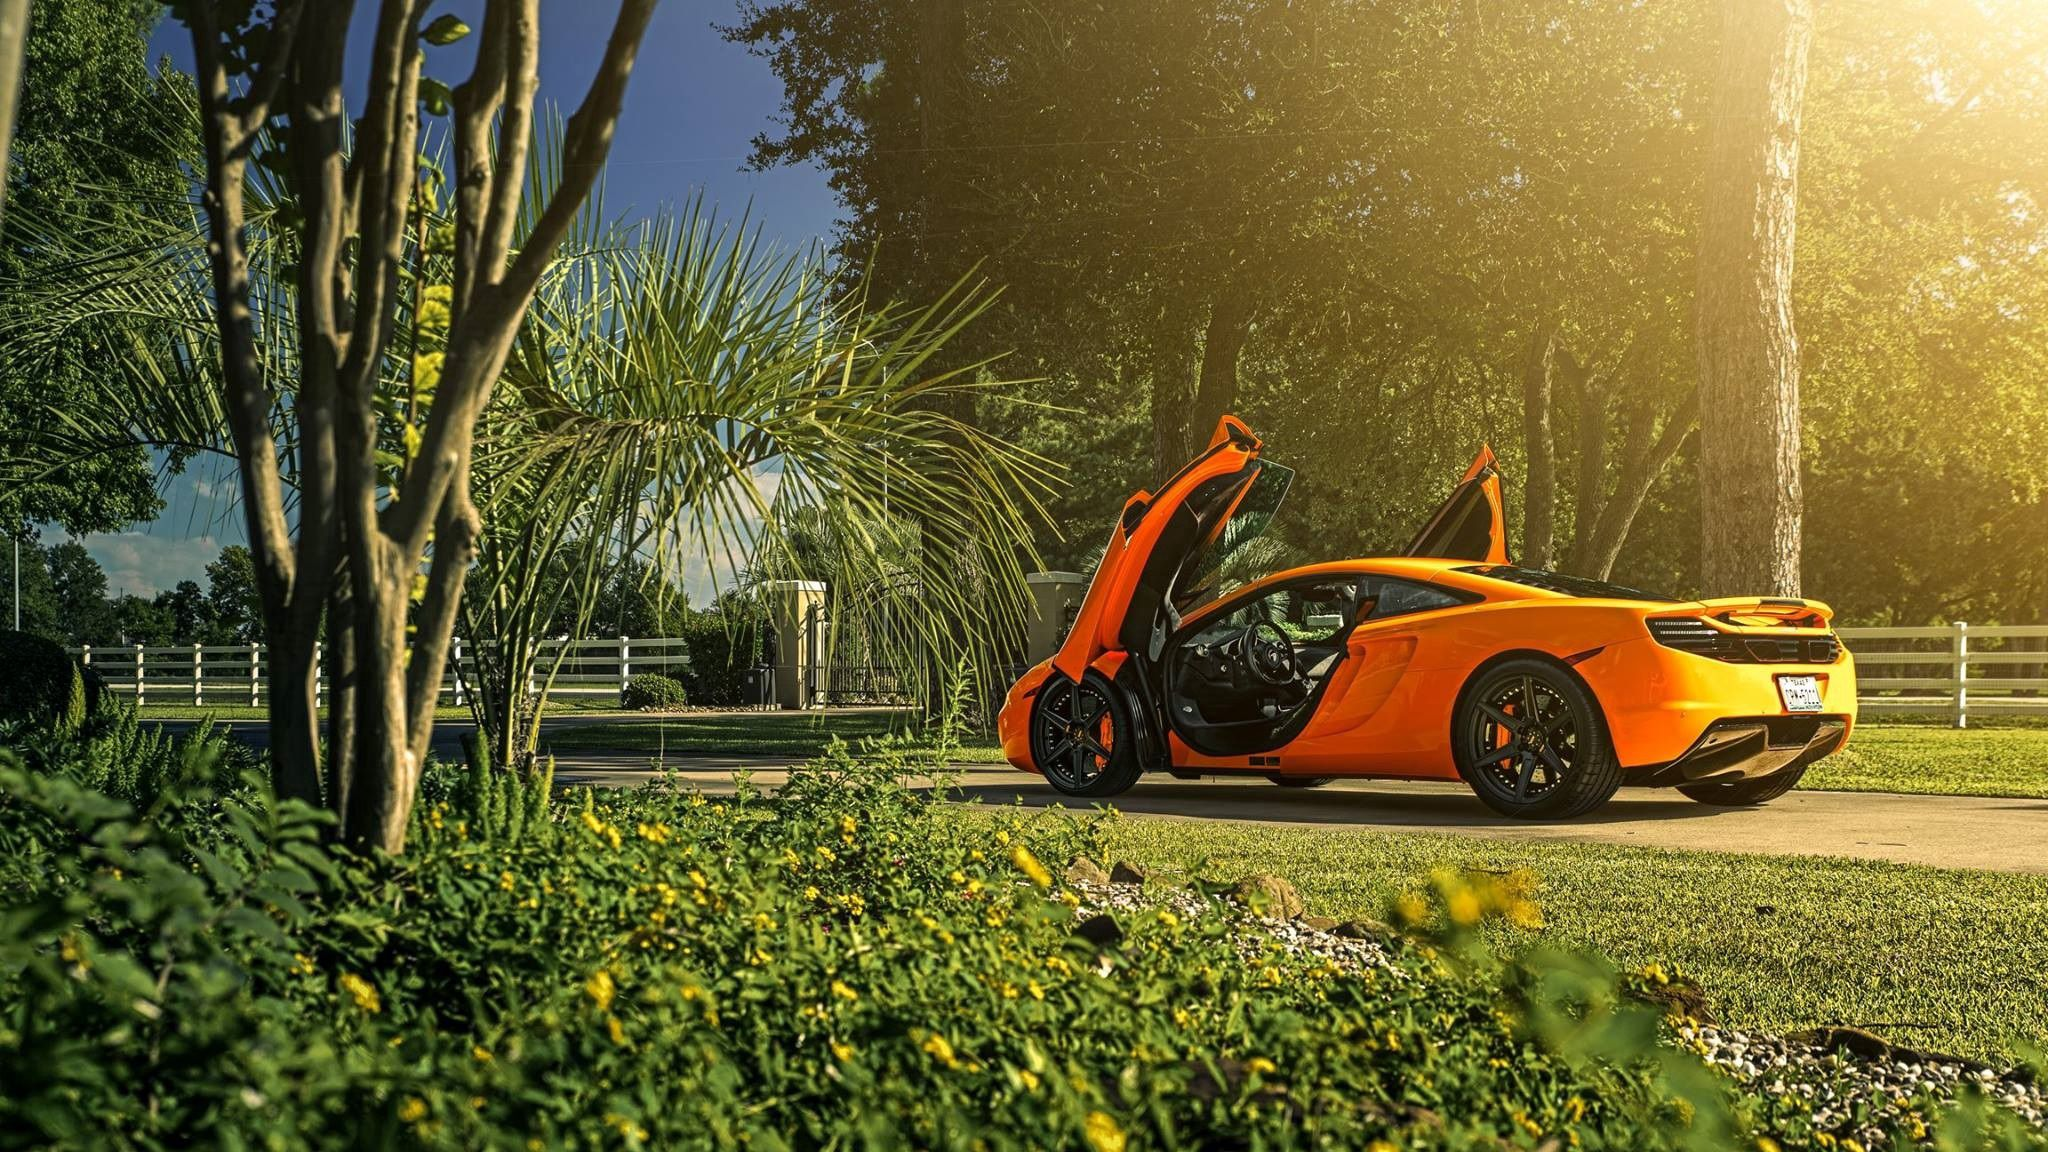 78376 free wallpaper 2160x3840 for phone, download images Supercar, Mclaren, Cars, Side View, Mp4-12C 2160x3840 for mobile